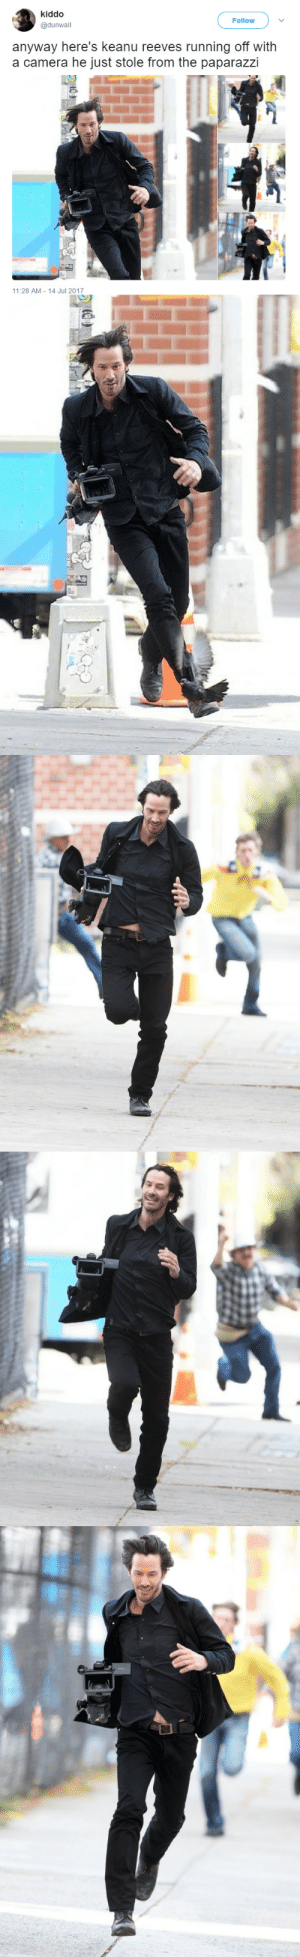 whostolemymonkey:  the-porter-rockwell:  forestwildflower:  thenatsdorf:Keanu Thieves (via mushroombirdornaments)  The people running after him makes it funnier  He looks so happy  The whole post, blessed.: kiddo  @dunwall  Follow  anyway here's keanu reeves running off with  a camera he just stole from the paparazzi  11:28 AM 14 Jul 2017 whostolemymonkey:  the-porter-rockwell:  forestwildflower:  thenatsdorf:Keanu Thieves (via mushroombirdornaments)  The people running after him makes it funnier  He looks so happy  The whole post, blessed.